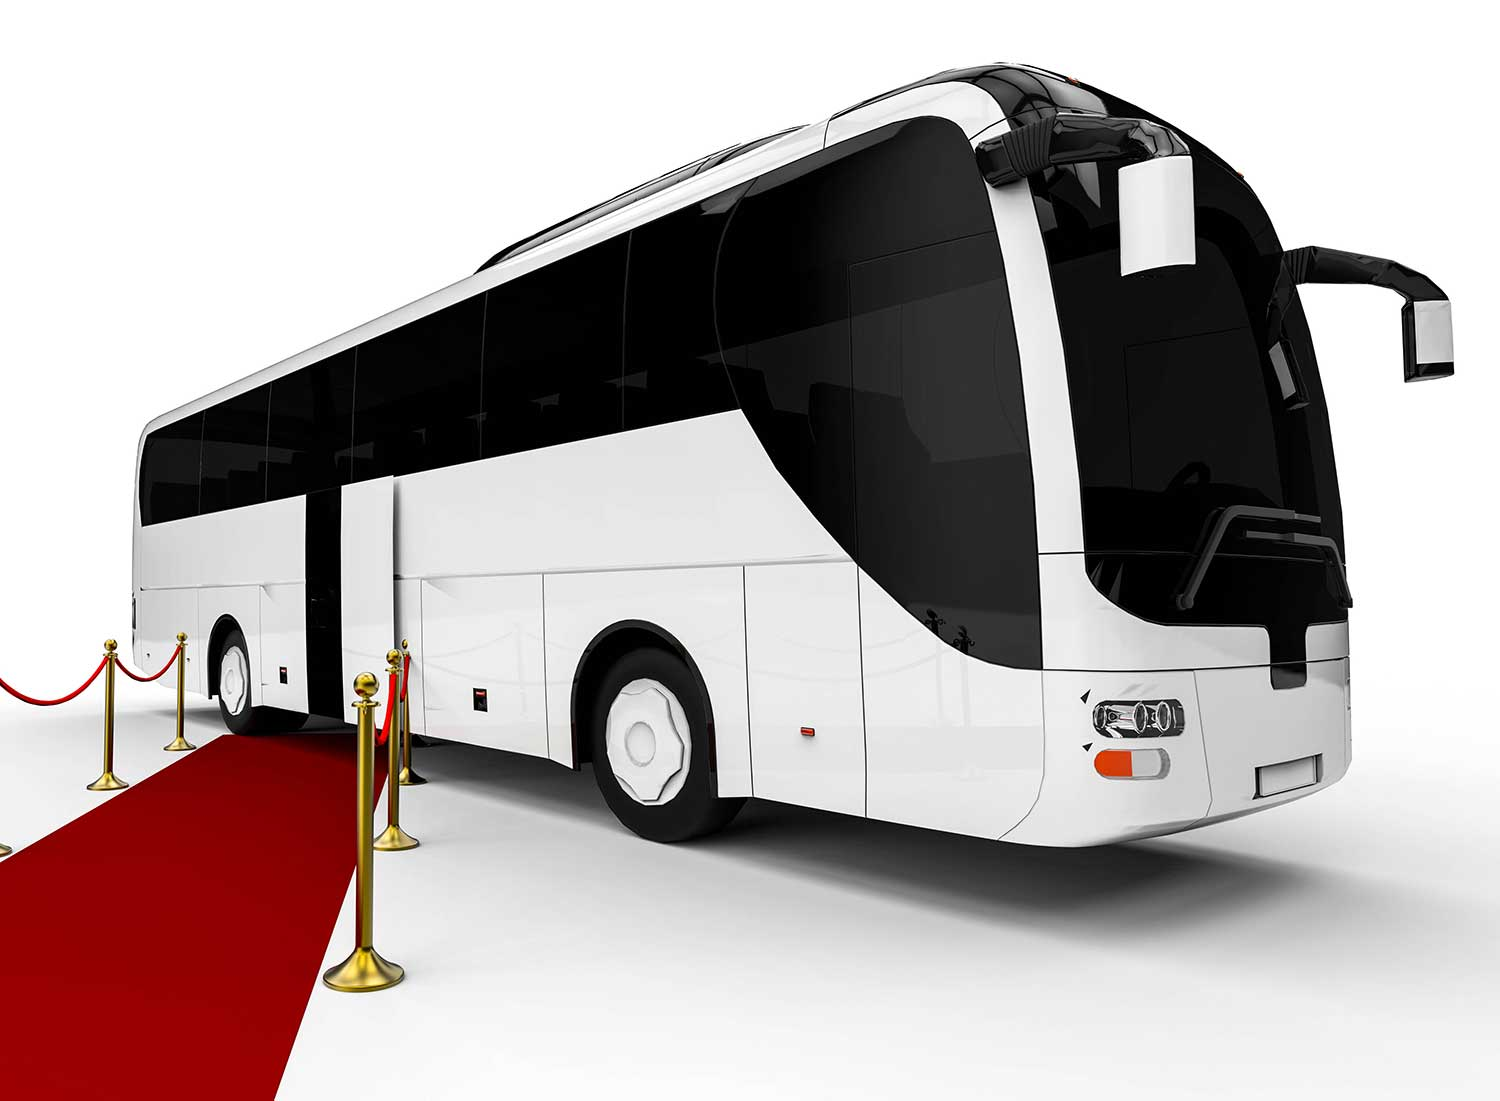 St Petersburg Party Buses - Photo of a bus with a red carpet in front